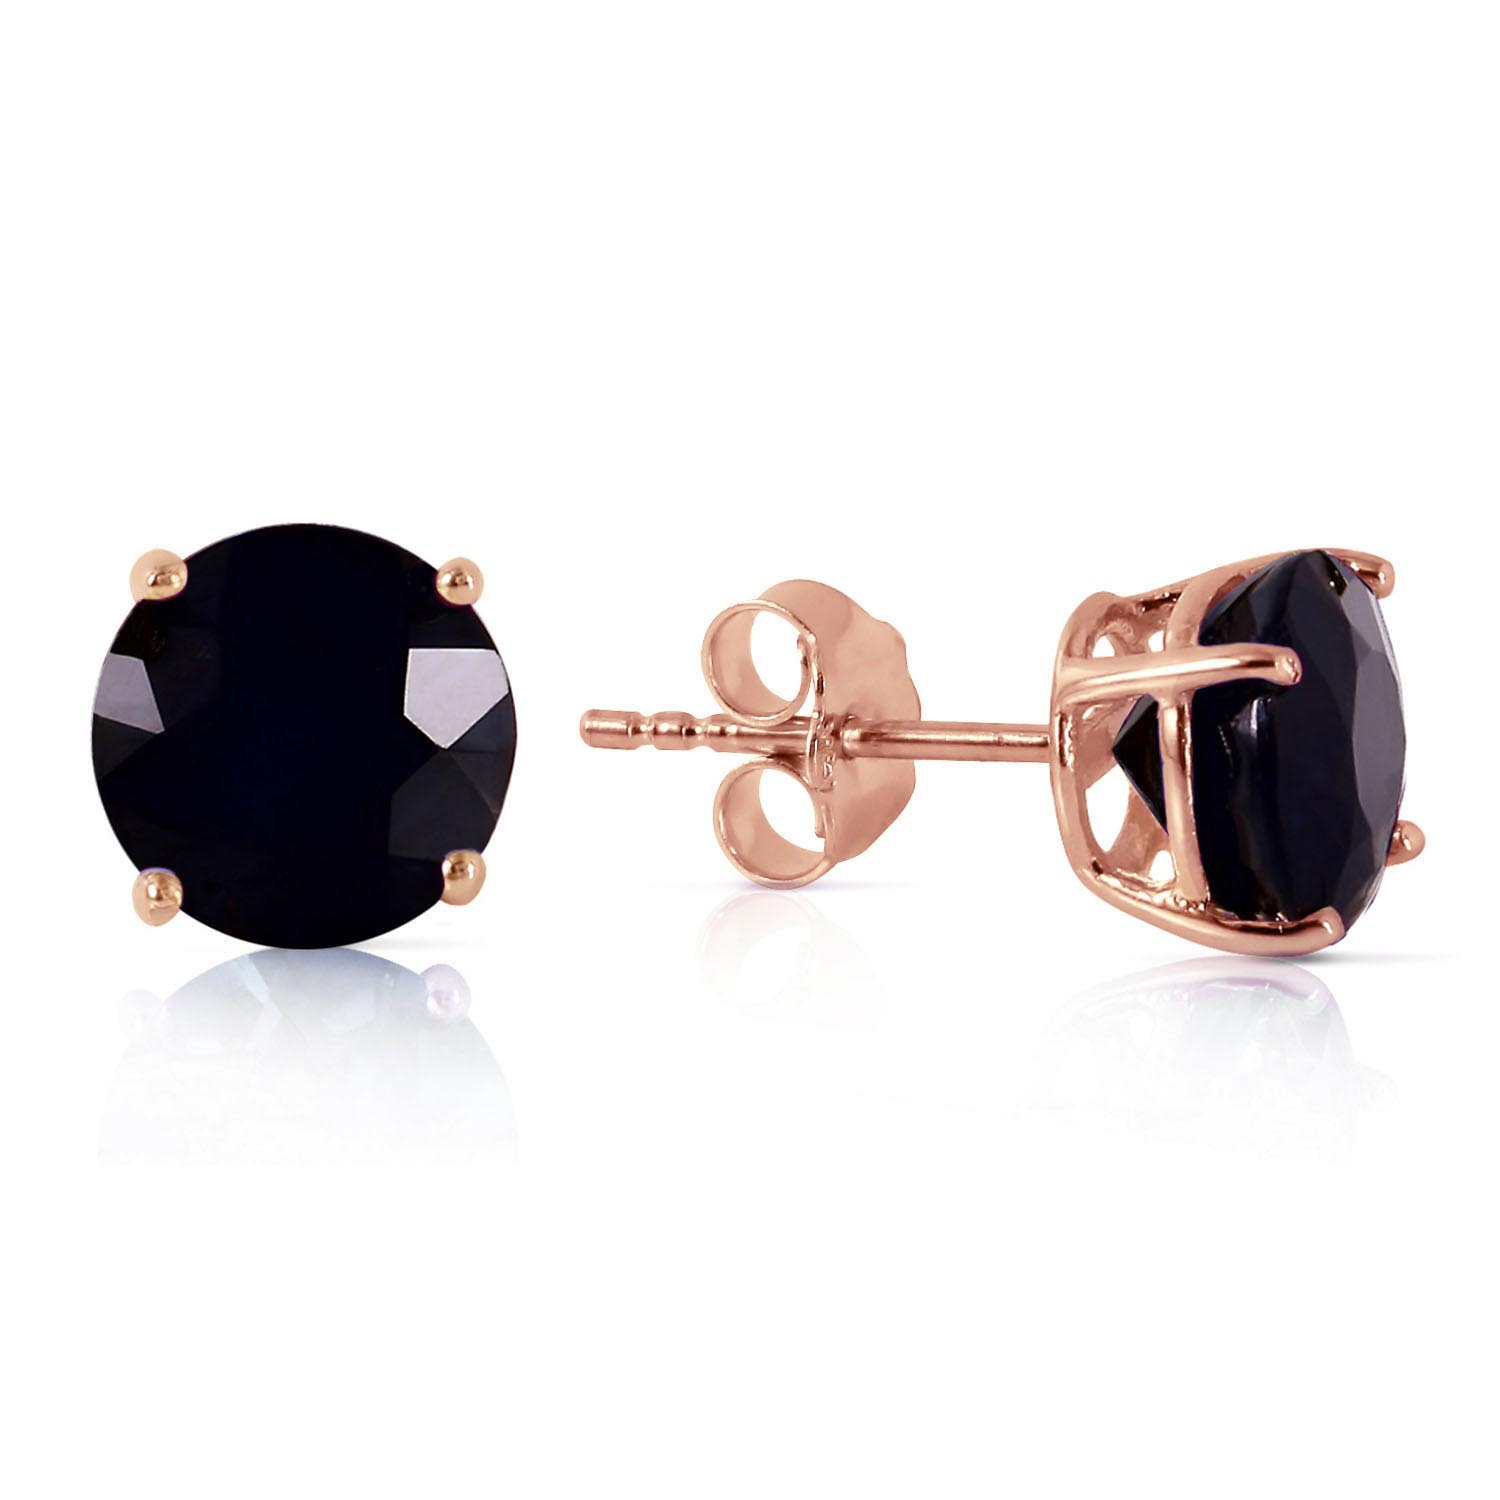 Diamond Stud Earrings 7 ctw in 9ct Rose Gold